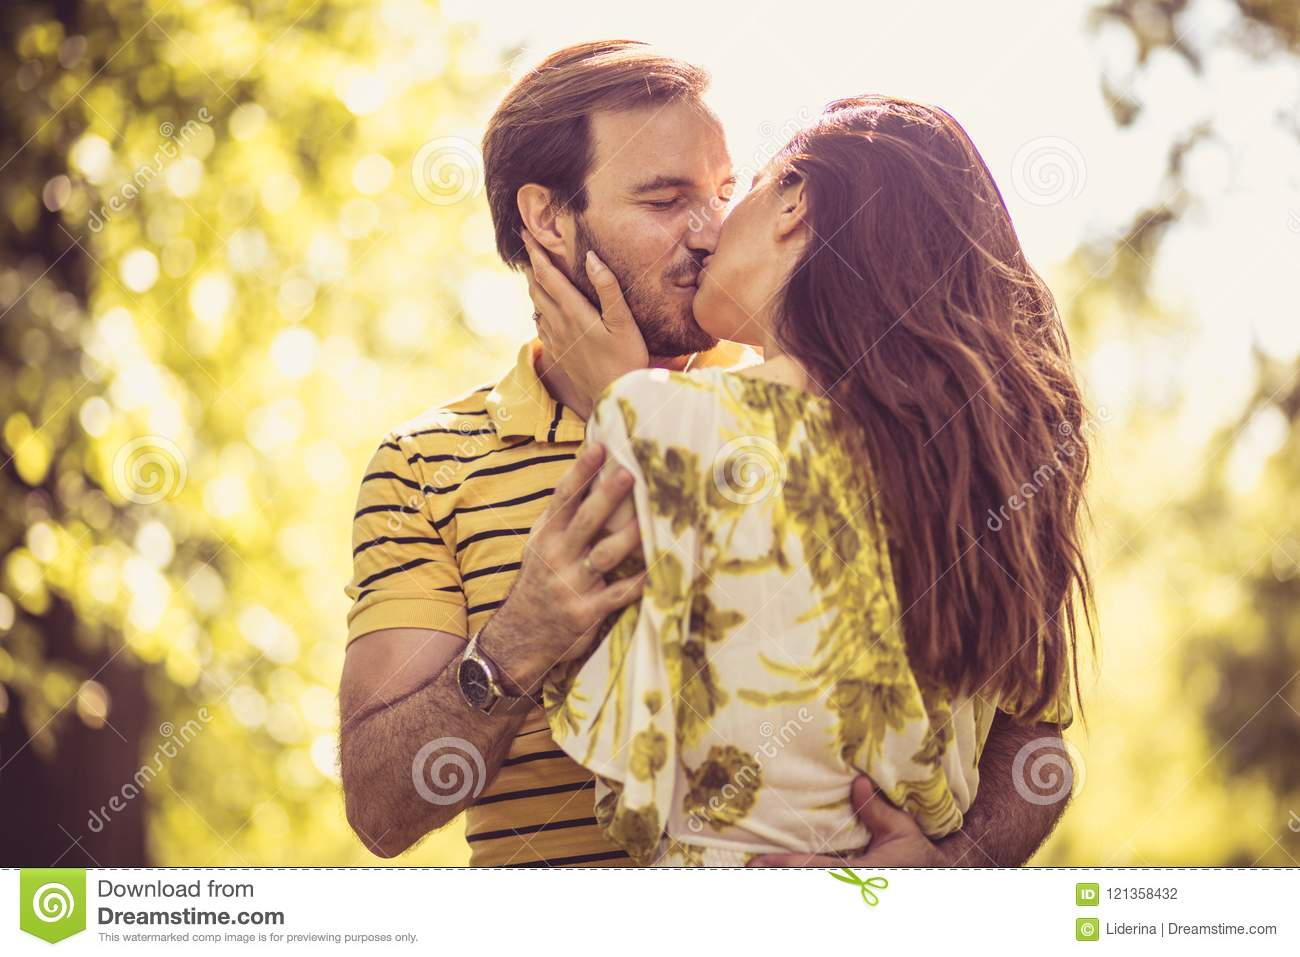 Kissing couple at spring season. Portrait.